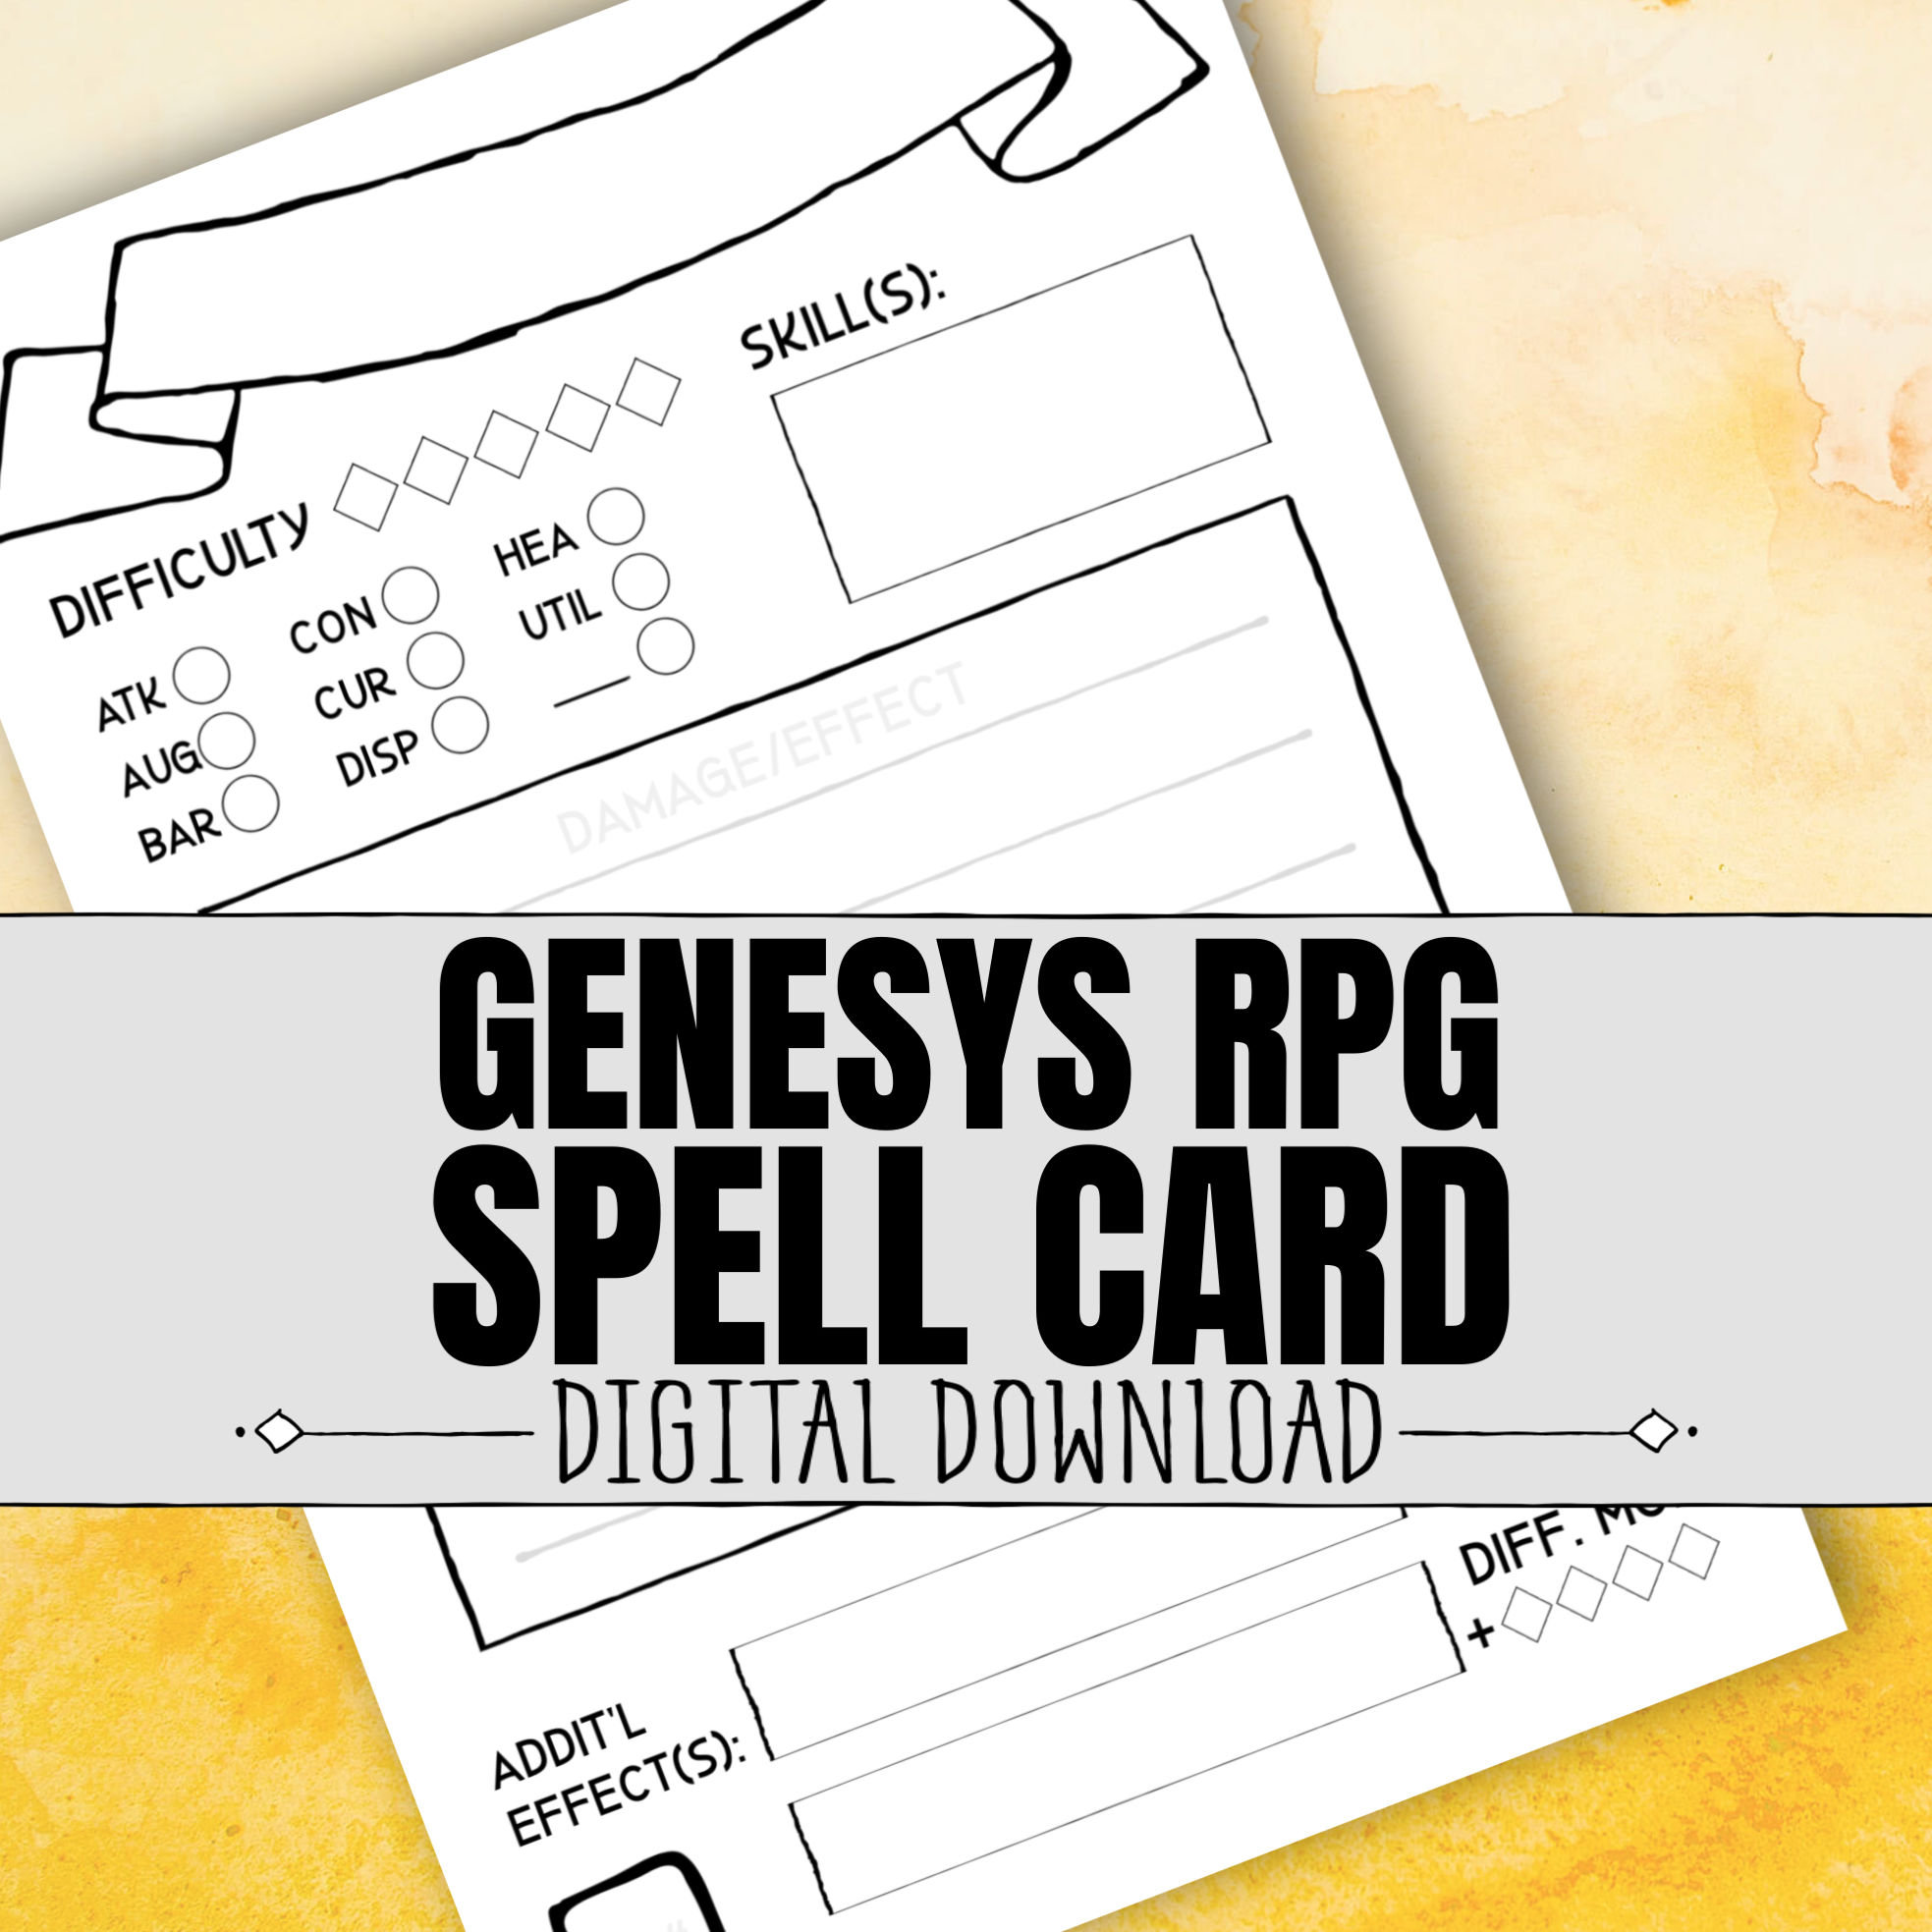 Genesys RPG SPELL CARD / Spellcaster / Rpg / Roleplaying Game / Digital  Download